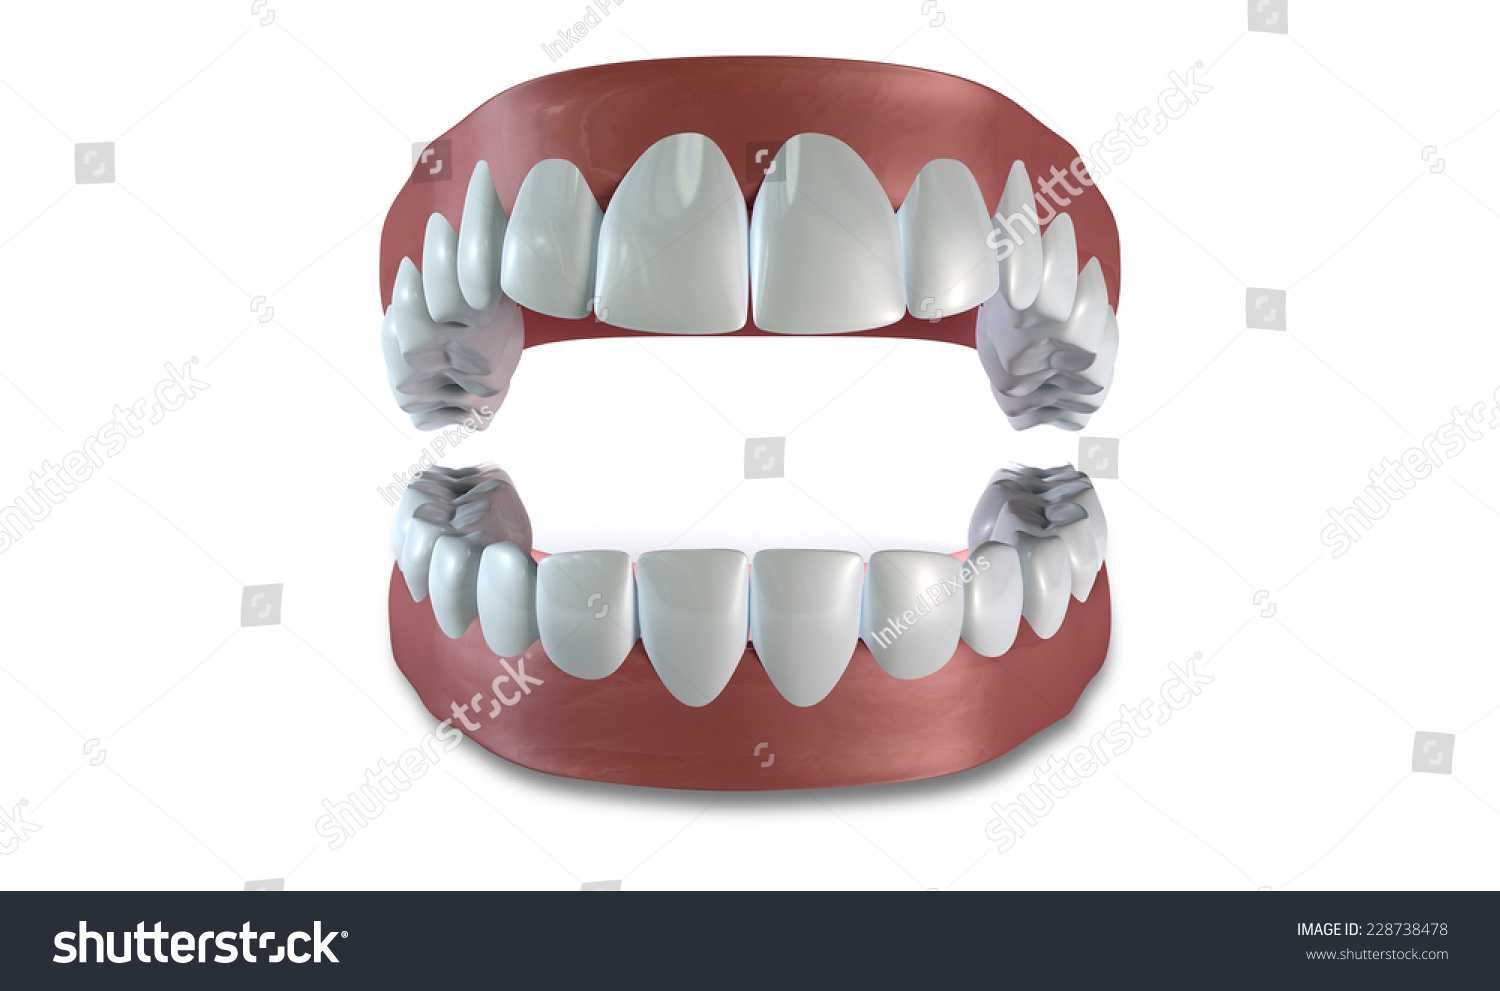 Royalty Free Stock Illustration Of Separated Upper Lower Sets Human